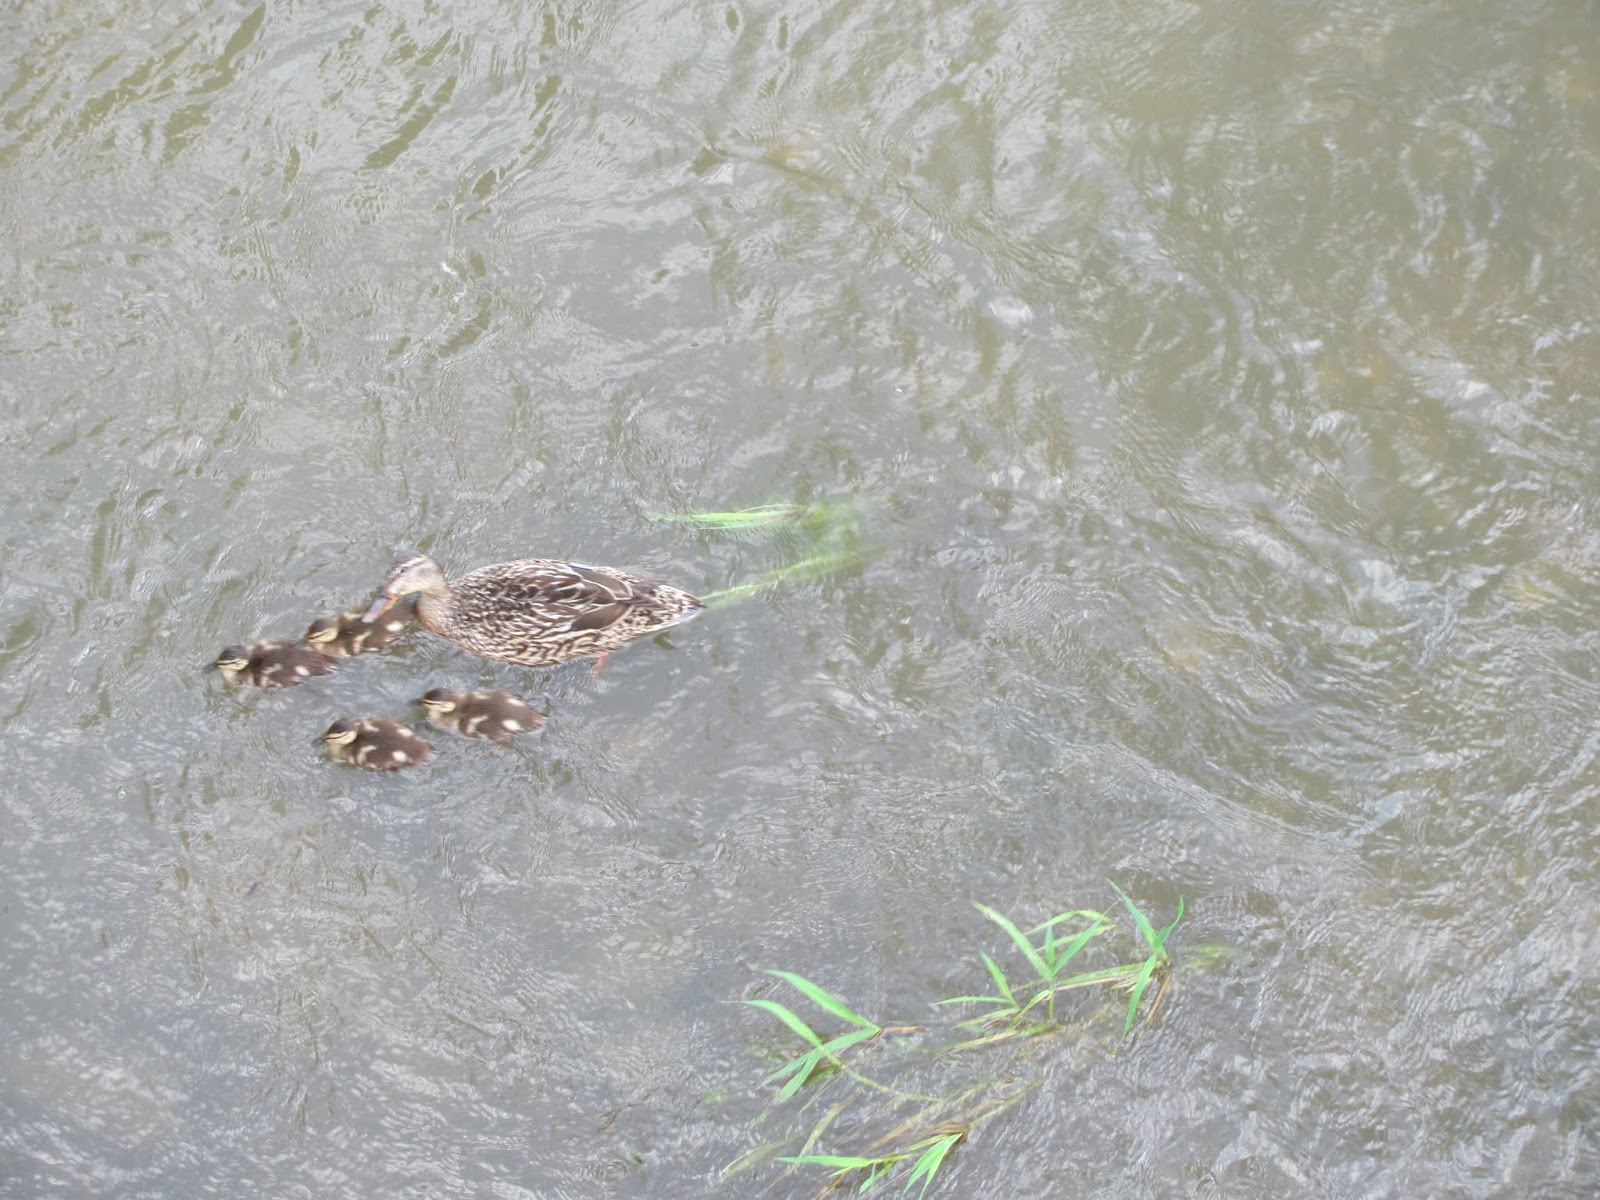 A mother duck and several ducklings are the subject of the last photo we took on our road trip in Coralville, Iowa